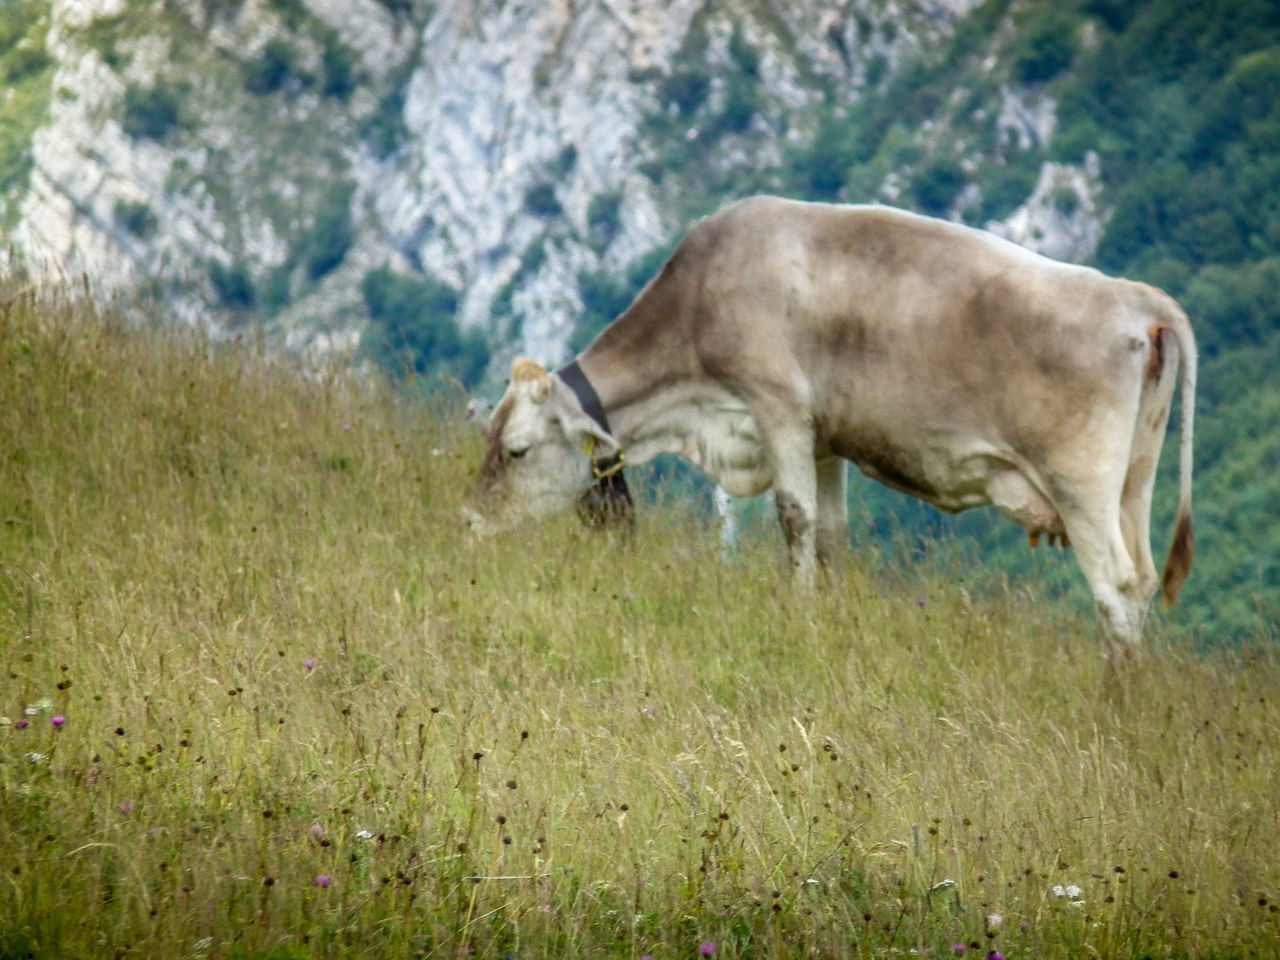 Animal Animal Themes Animale Animals Animals In The Wild Bergwelt Bergwelten Cow Day Dog Domestic Animals Gebirge Grass Kuh Latte Mammal Montagna Mountain Mucca Nature No People One Animal Outdoors Tier Tiere